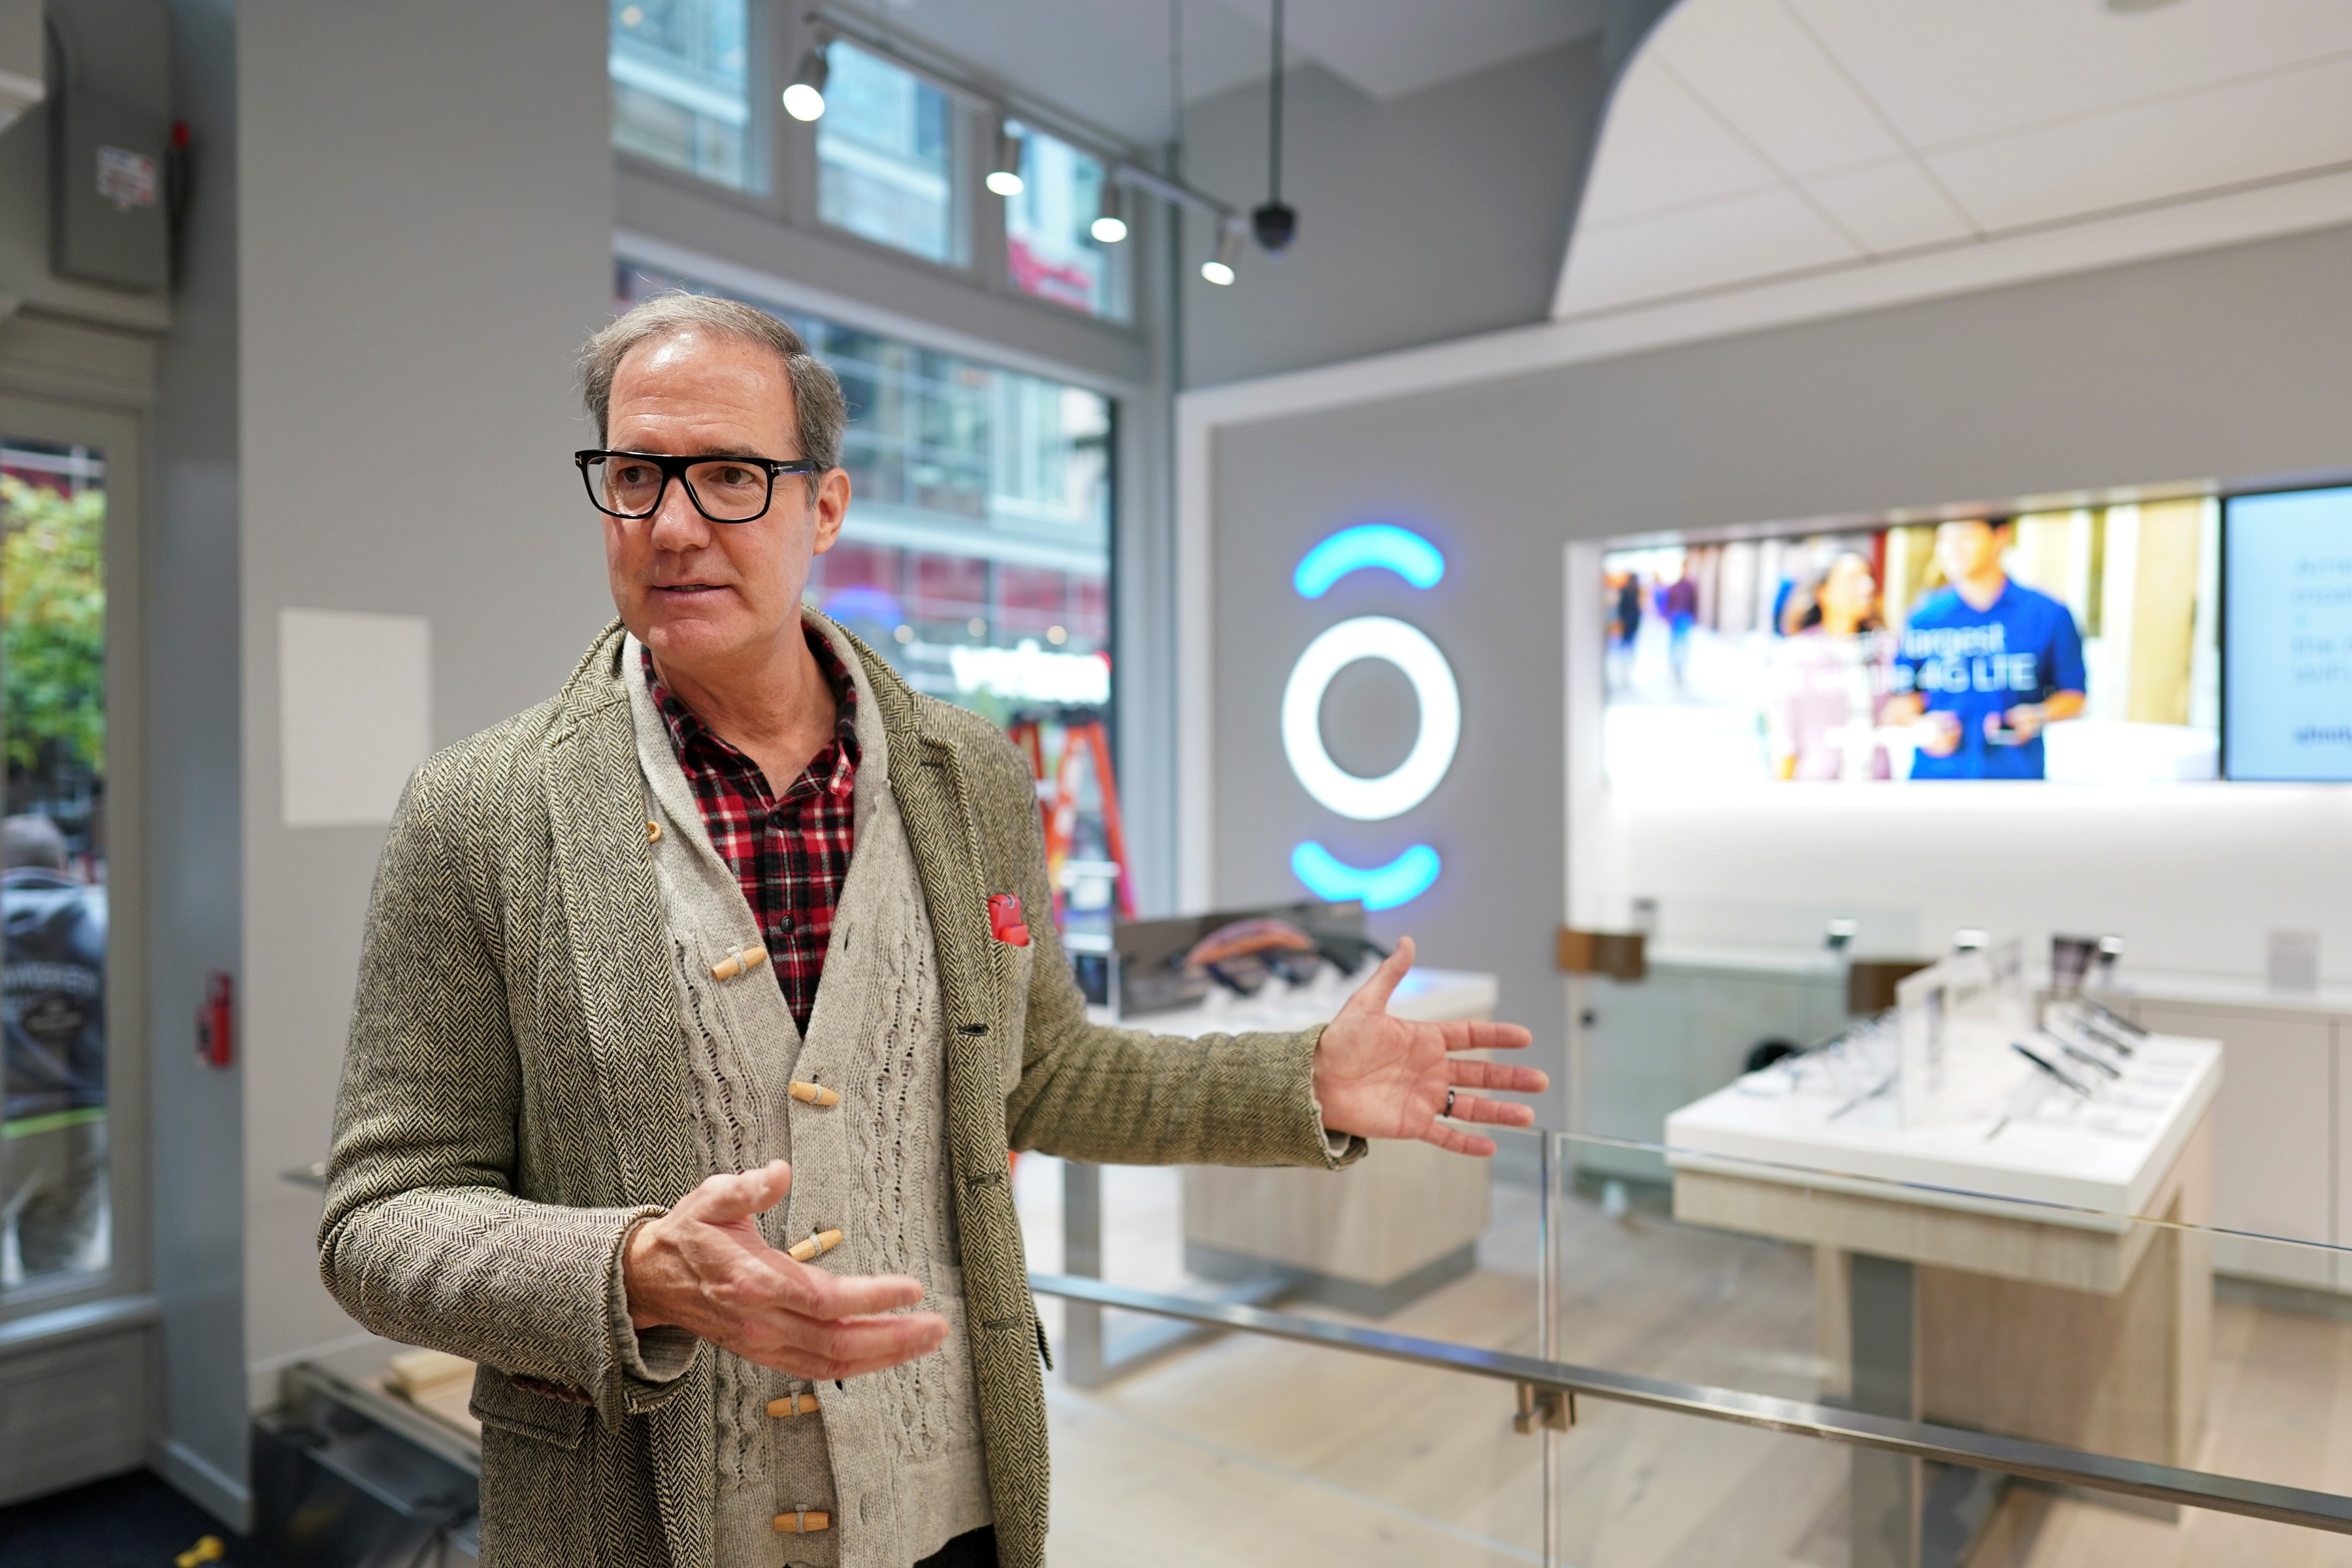 John Giacomazzi, a Comcast Corp. vice president, helped design the new Xfinity stores. He formerly worked on retail store design with Sephora and Nordstrom. He speaks in the new Xfinity store on the 1400 block of Walnut Street.